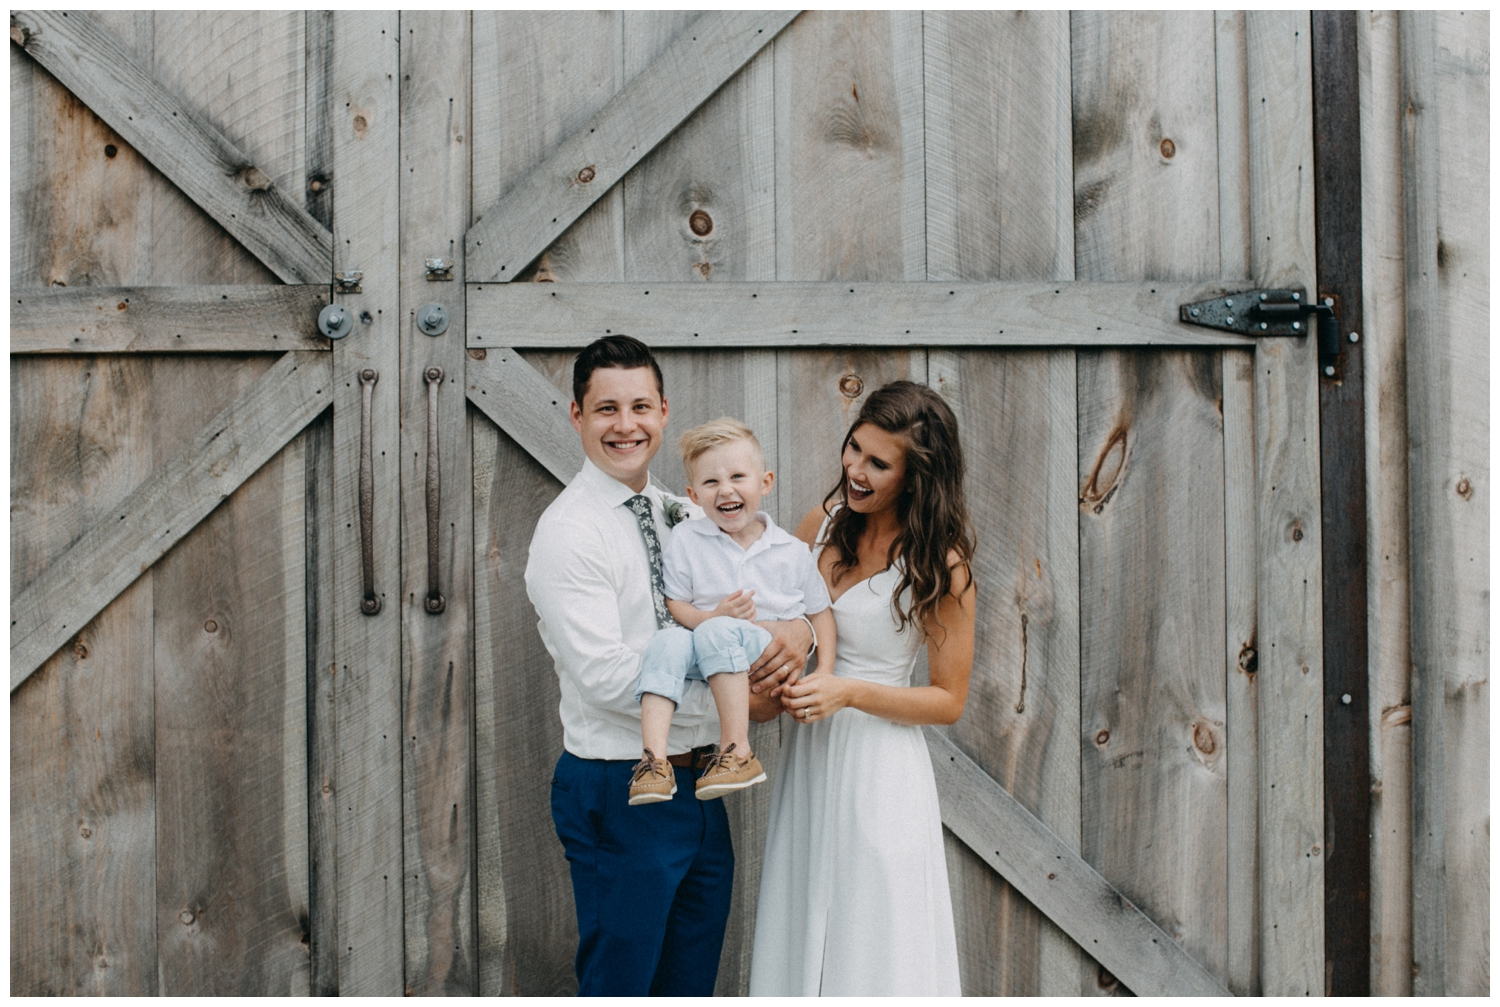 Natural family photos at Creekside Farm Wedding